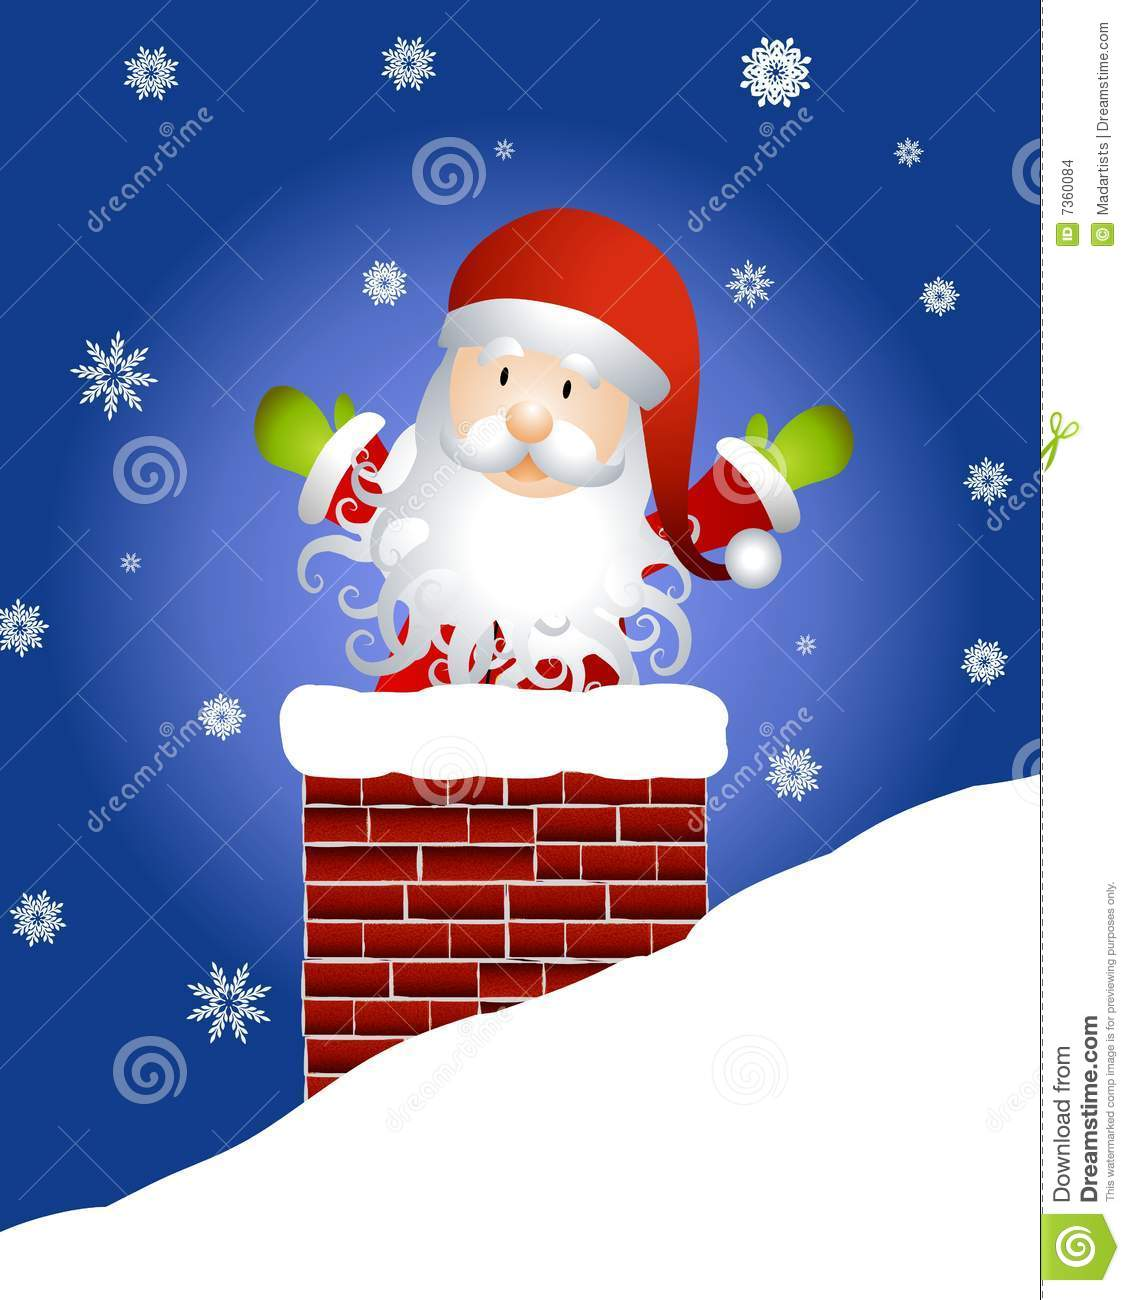 Le p re no l dans la chemin e illustration stock illustration du clip claus 7360084 - Pere noel dans la cheminee ...